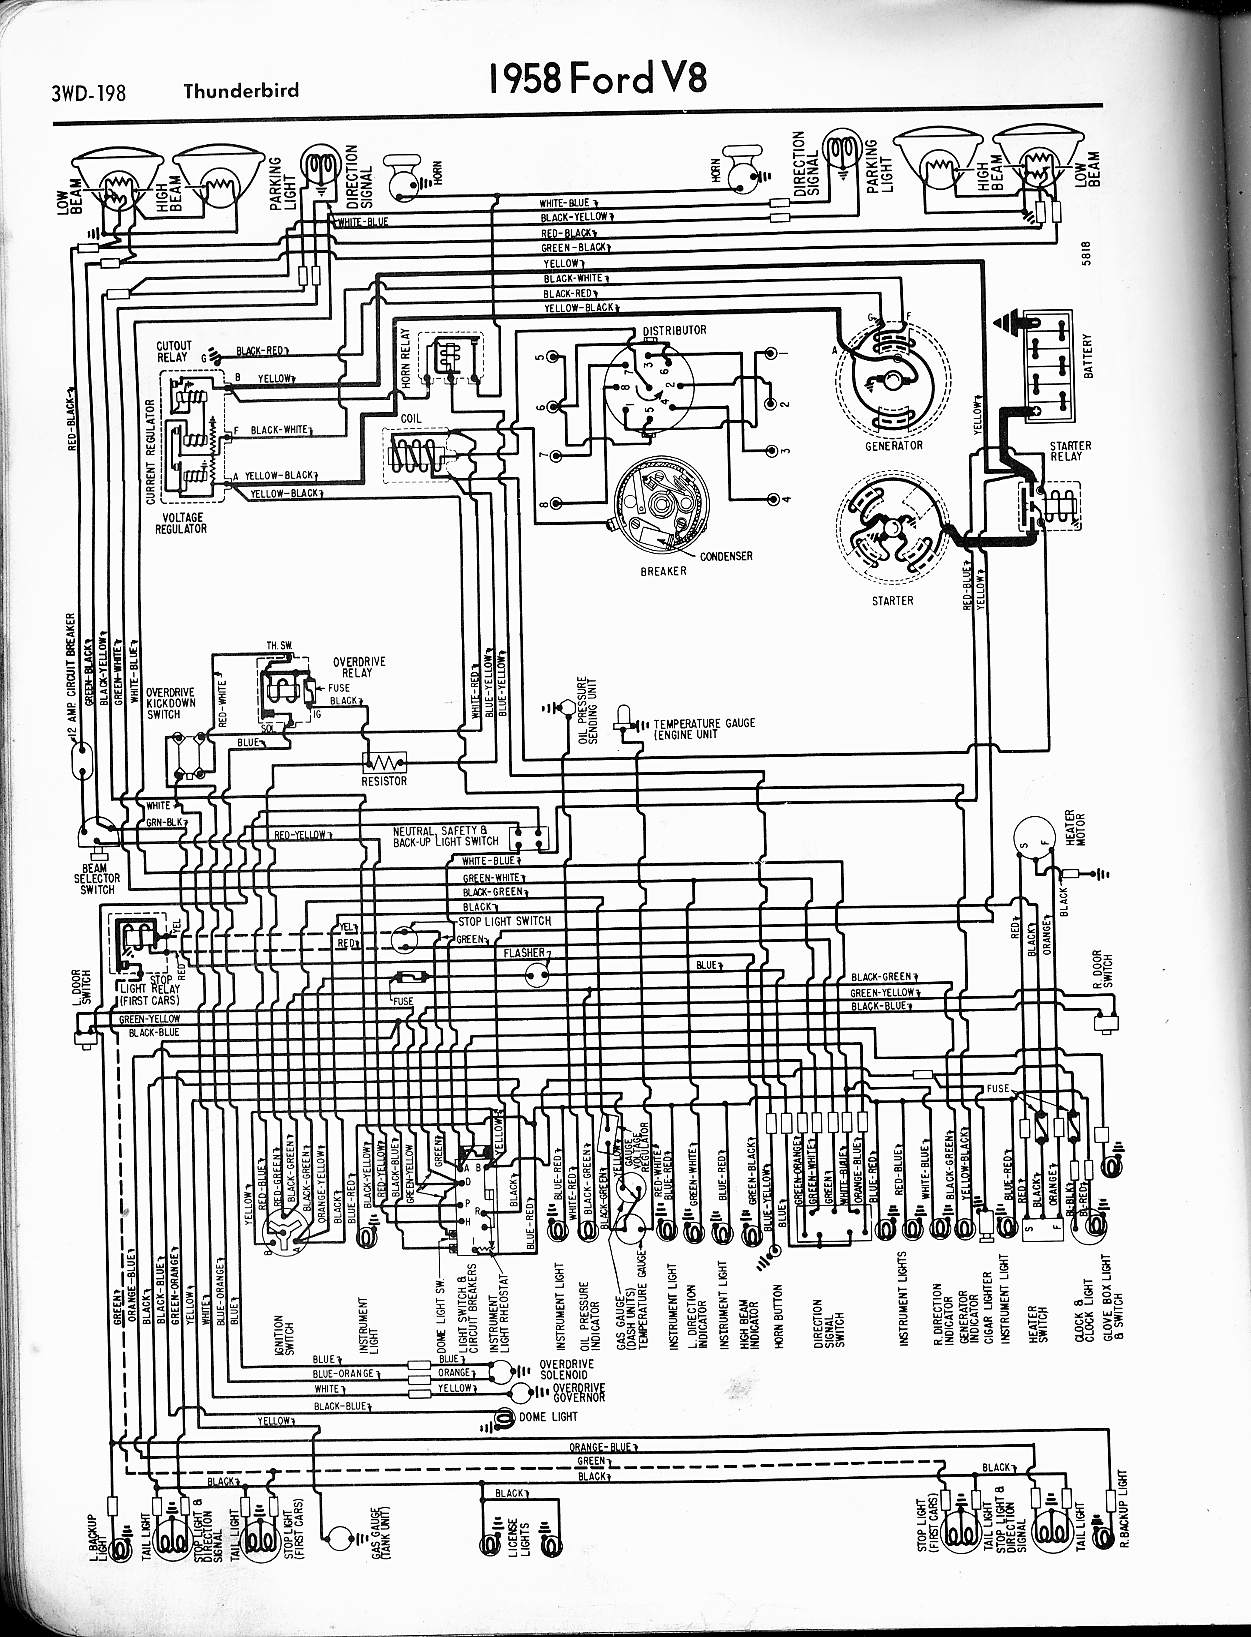 1970 Ford F100 Truck Wiring Diagram For Headlight Custom Images Gallery